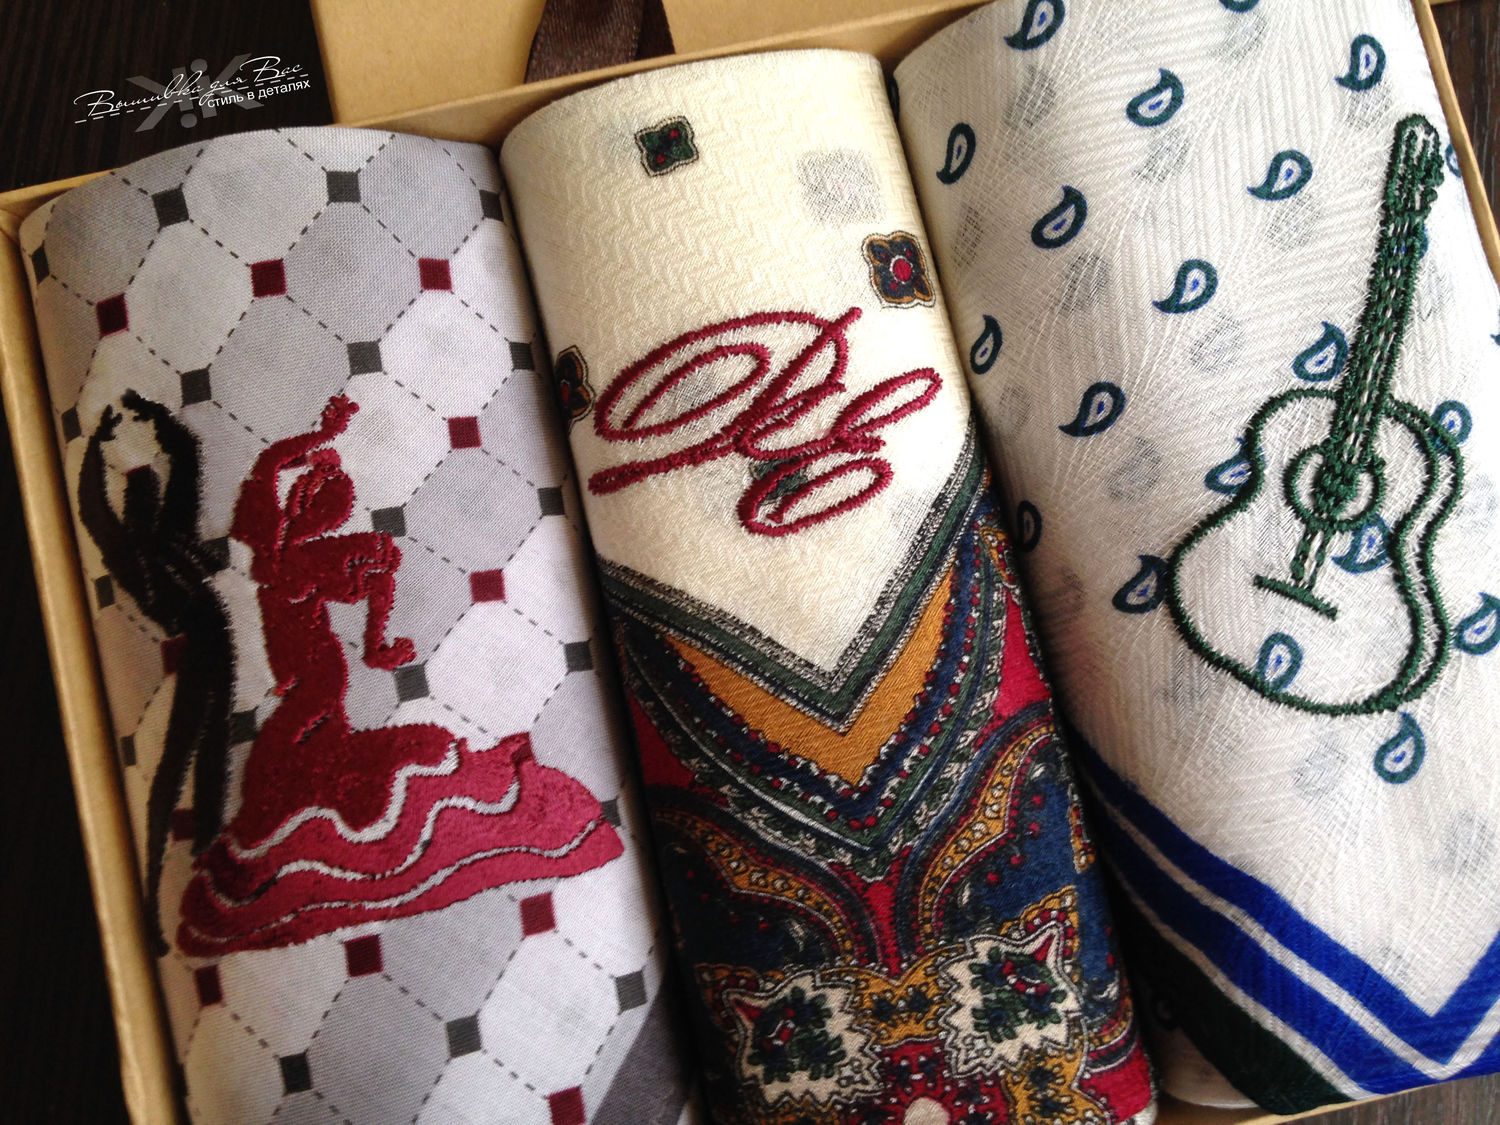 ... handkerchief bow men's embroidered initials ...